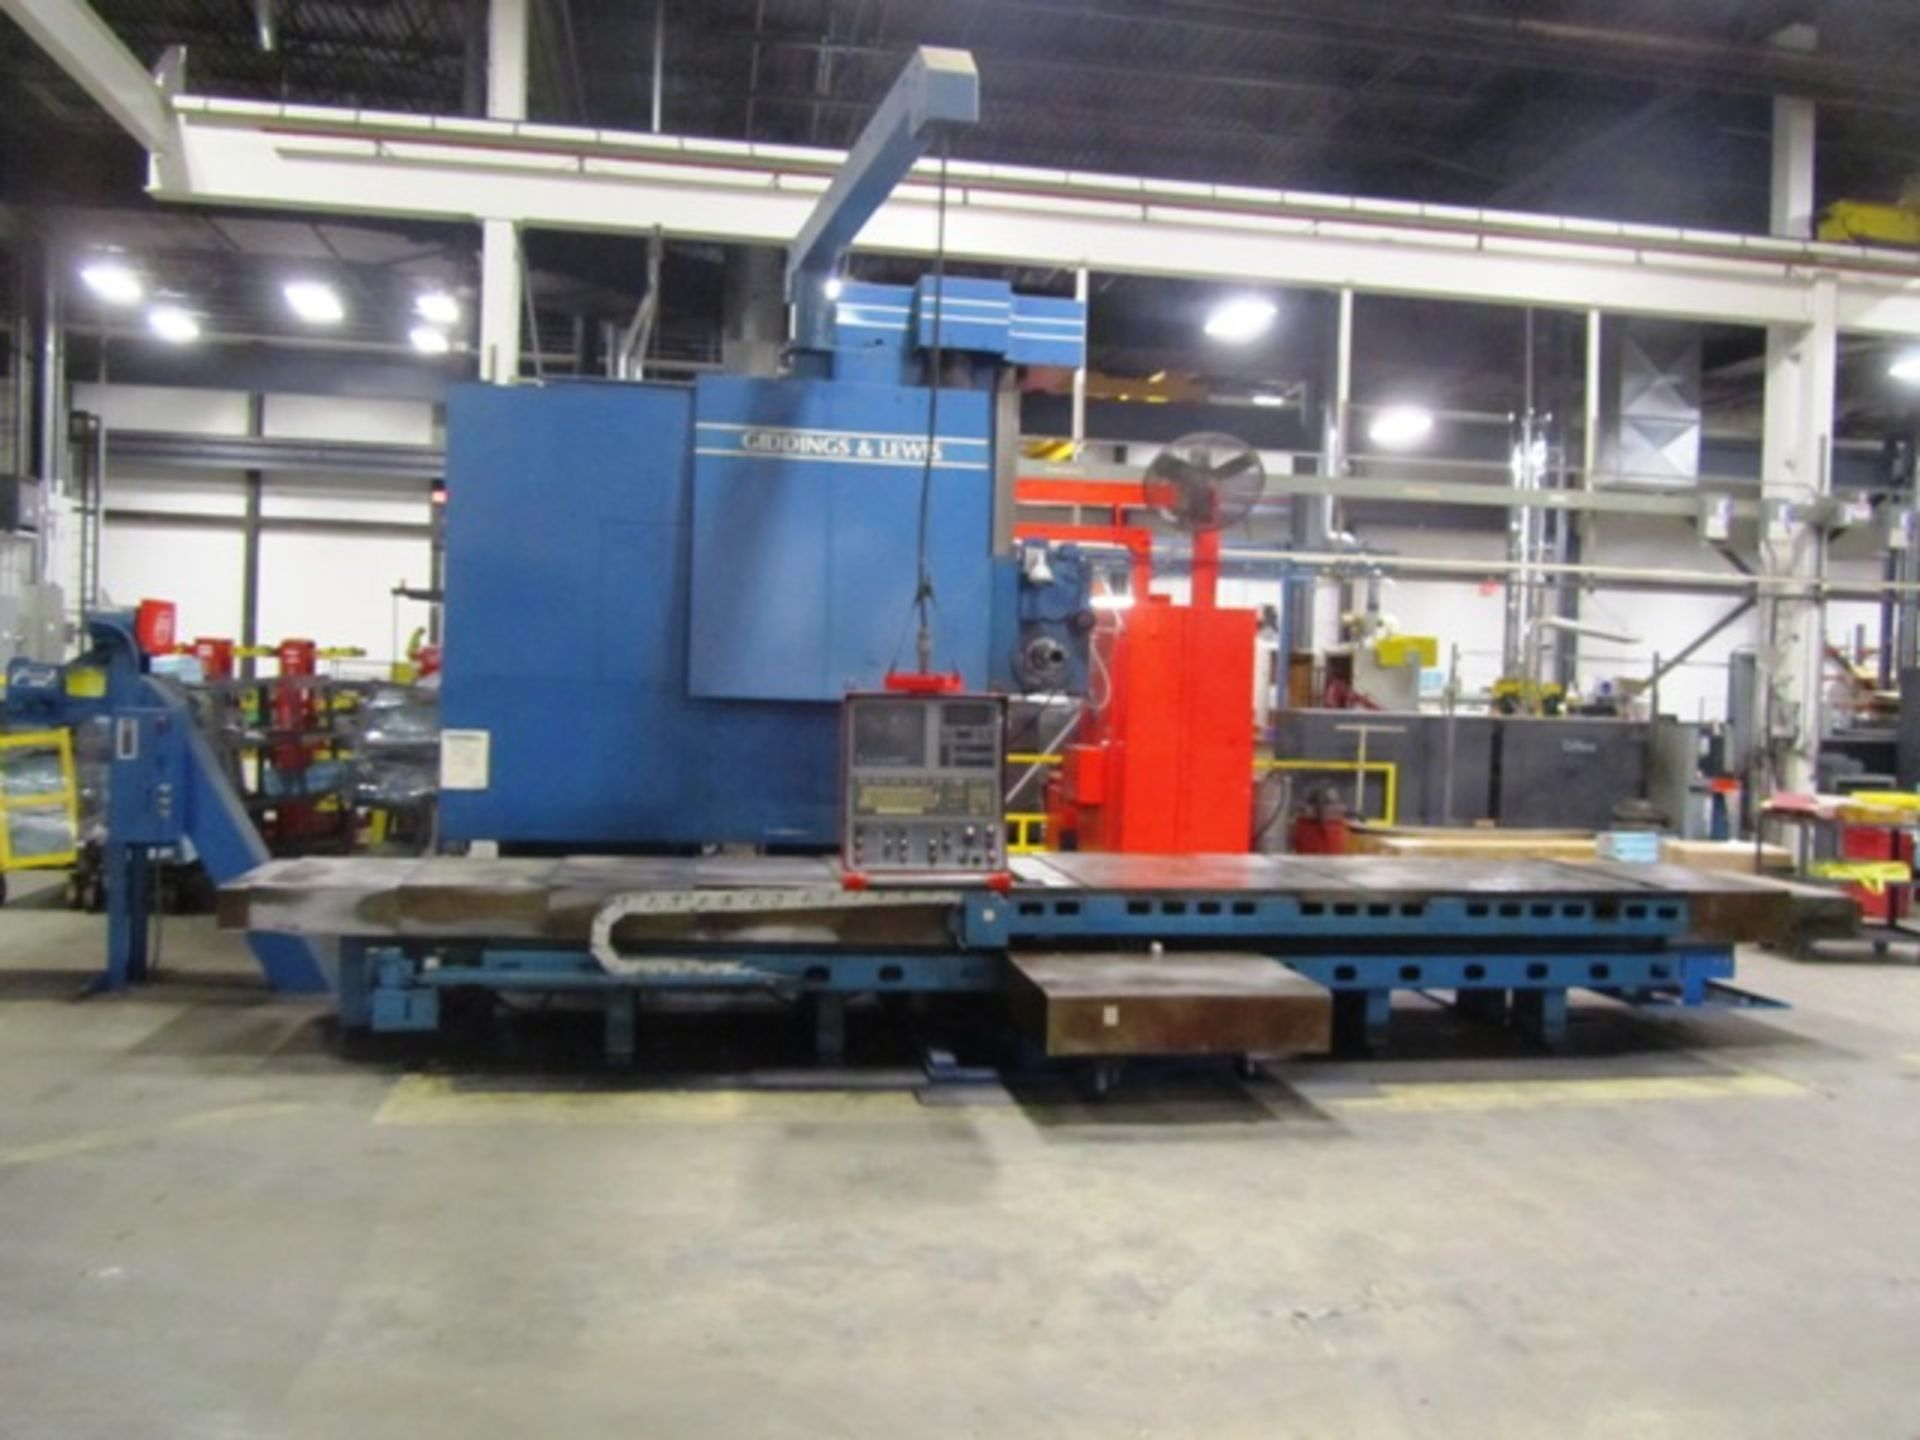 Giddings & Lewis Model 70-G5-T 5'' CNC Table Type Horizontal Boring Mill - Image 4 of 9